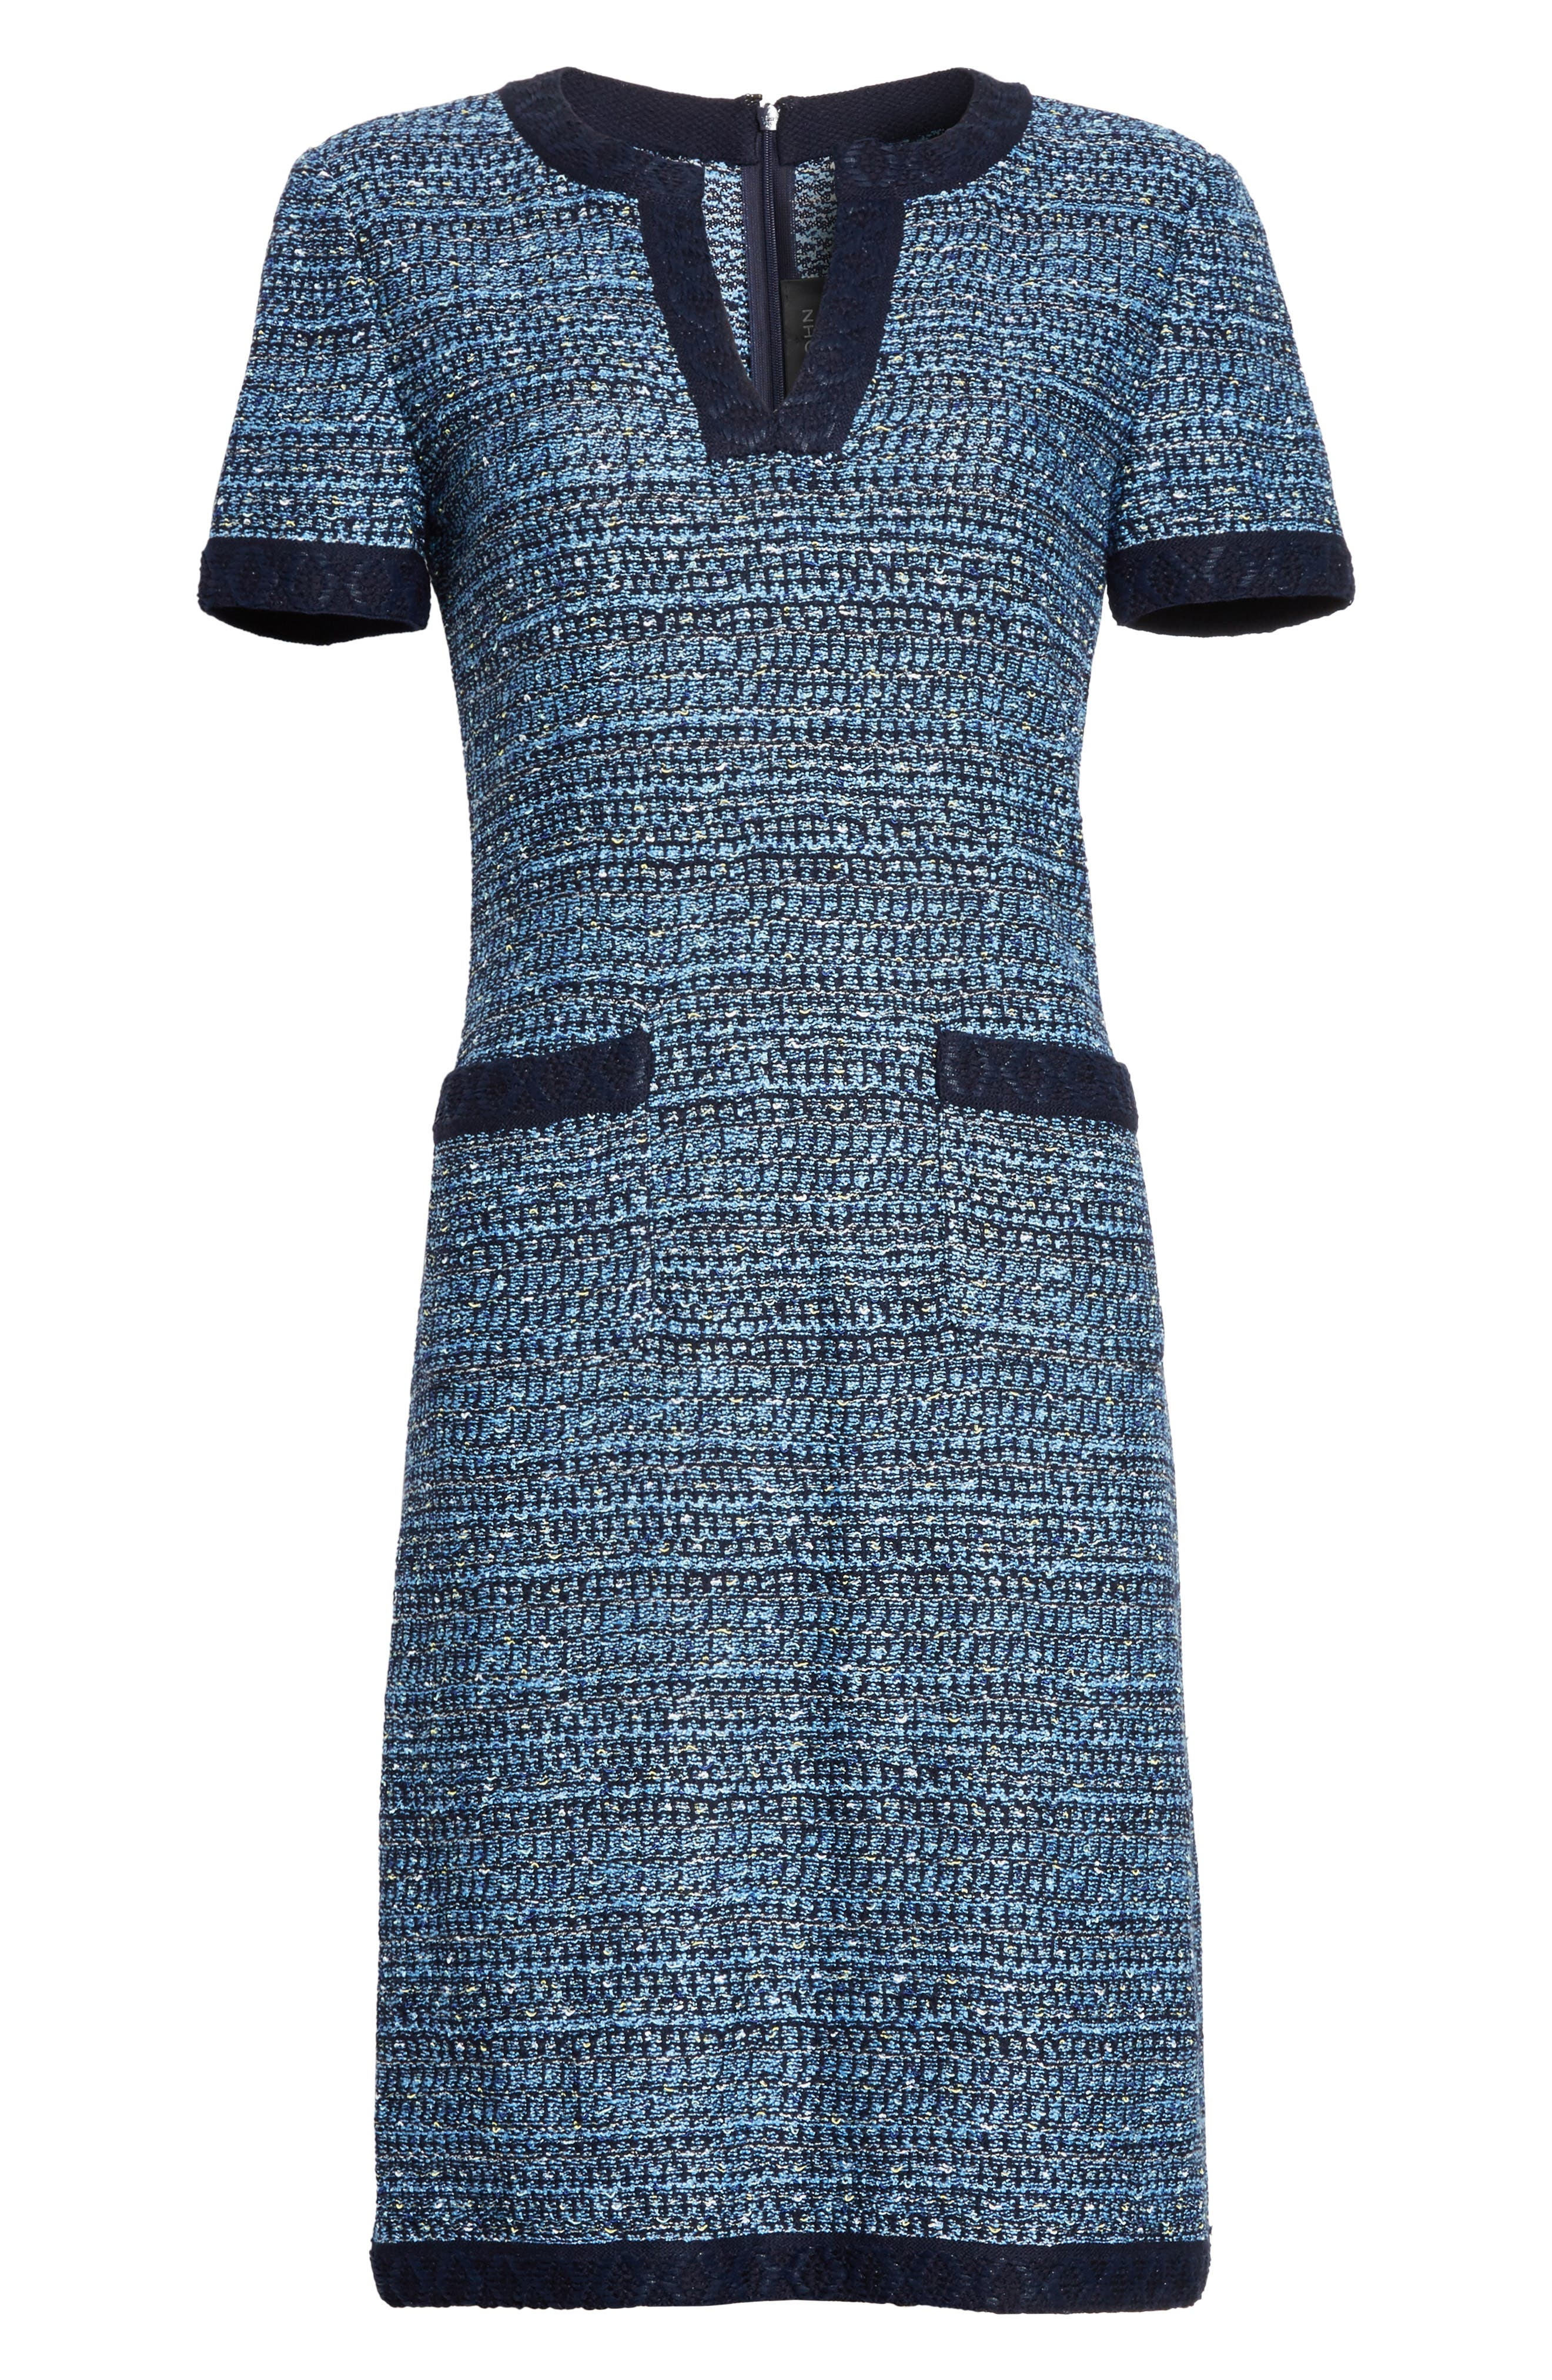 Short Sleeve Knit Dress,                             Alternate thumbnail 7, color,                             Navy Multi